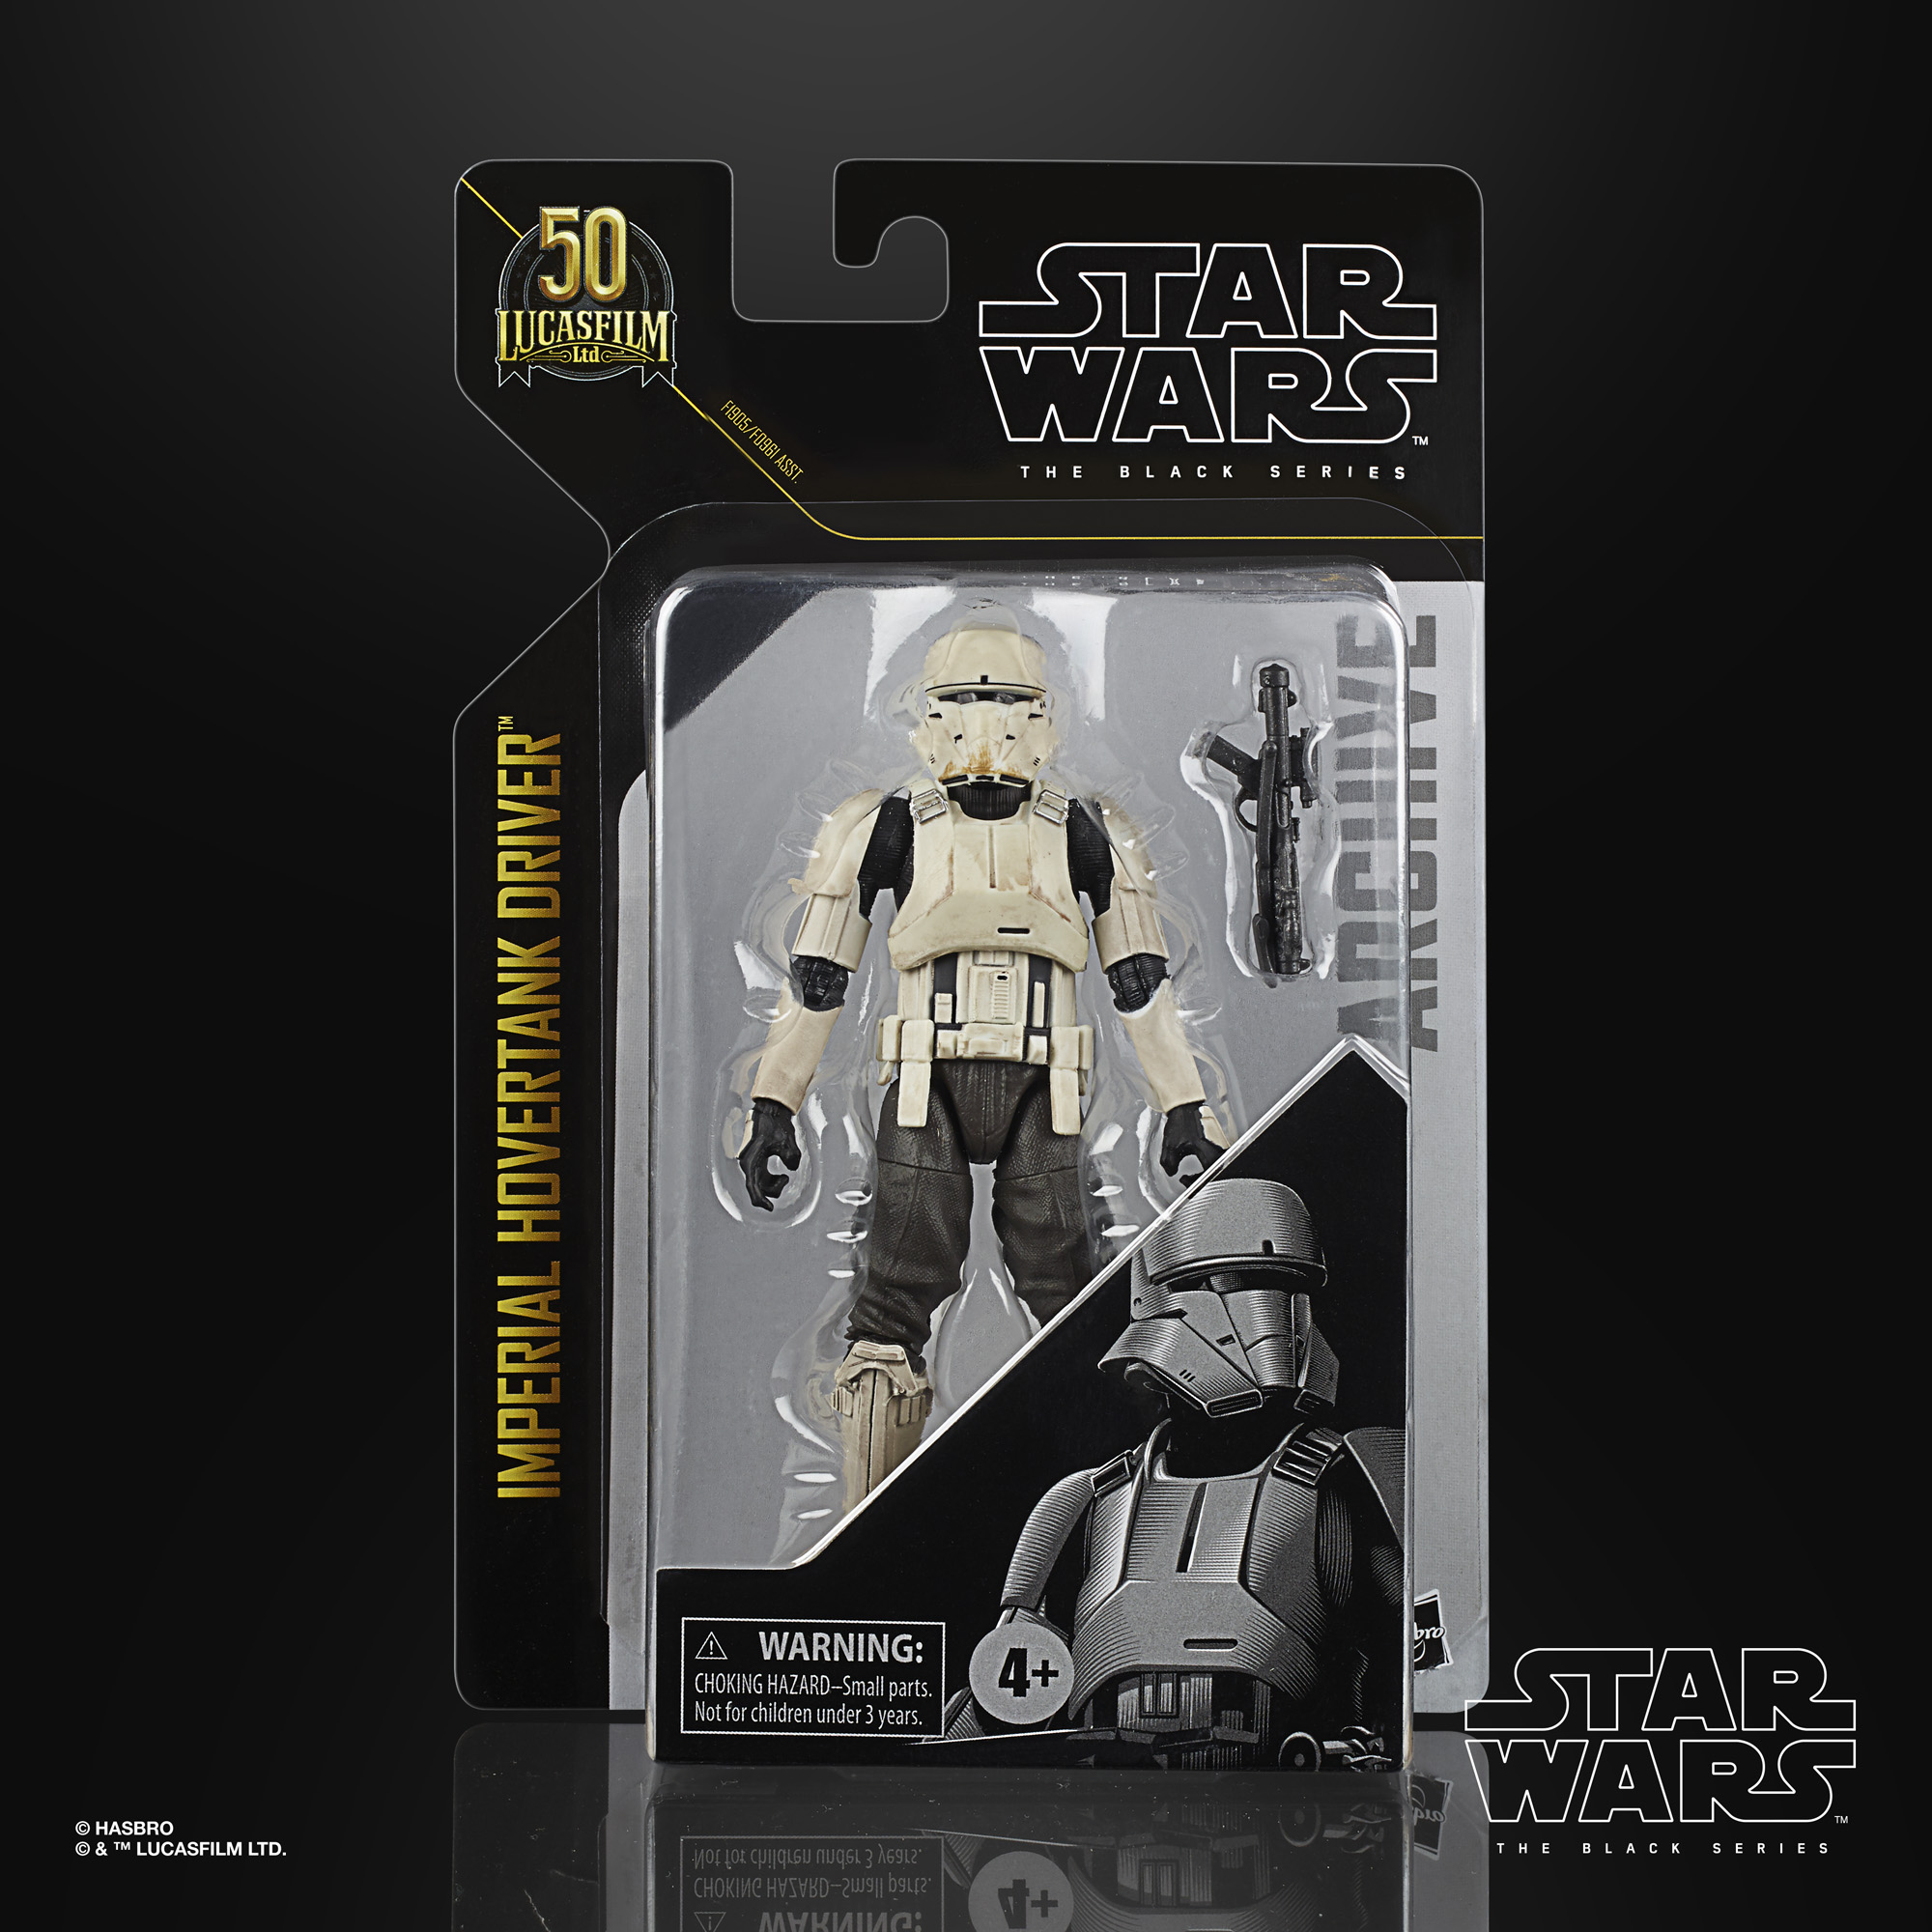 STAR WARS THE BLACK SERIES ARCHIVE 6-INCH IMPERIAL HOVERTANK DRIVER Figure – in pck(1)